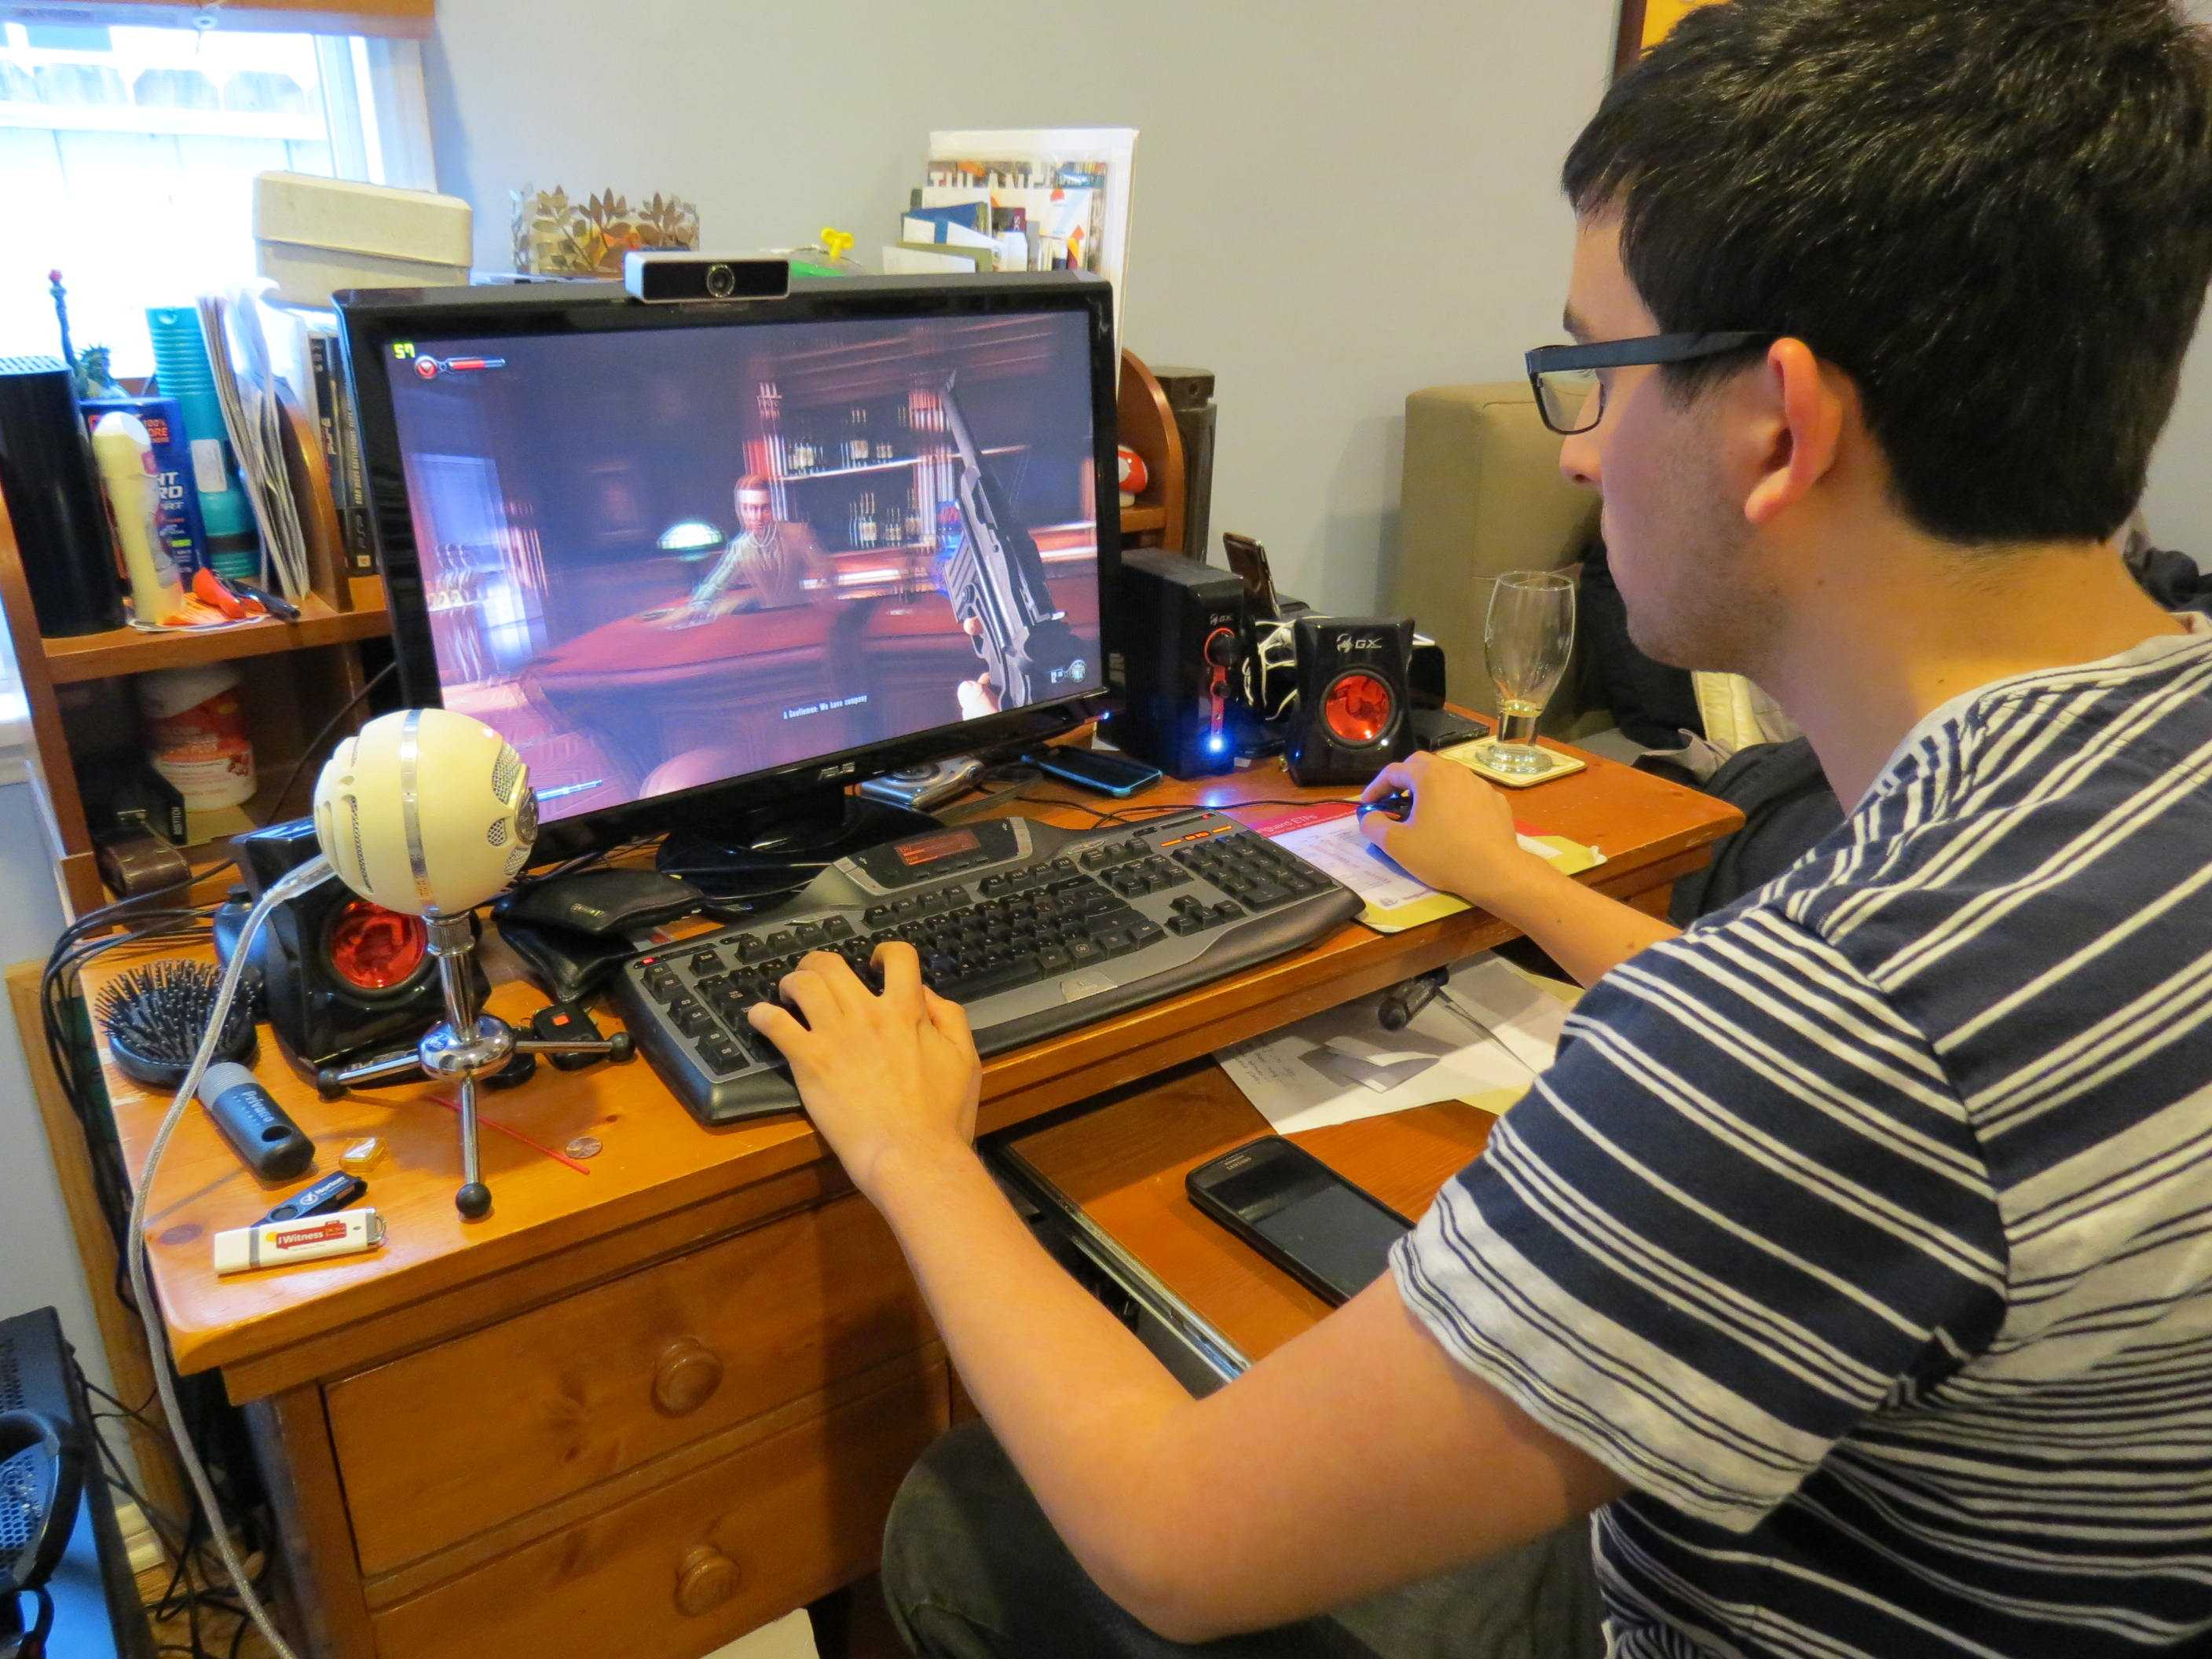 COMPUTER: Paul Merritt, playing says video games involve the viewer more than TV can.